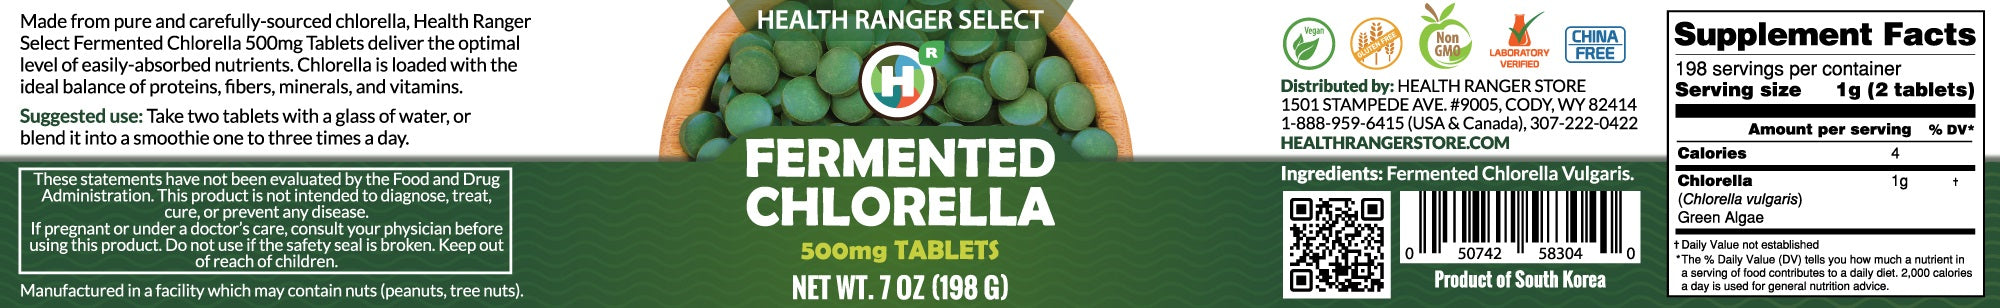 Fermented Chlorella tablets 500mg Tabs 7oz (198g)